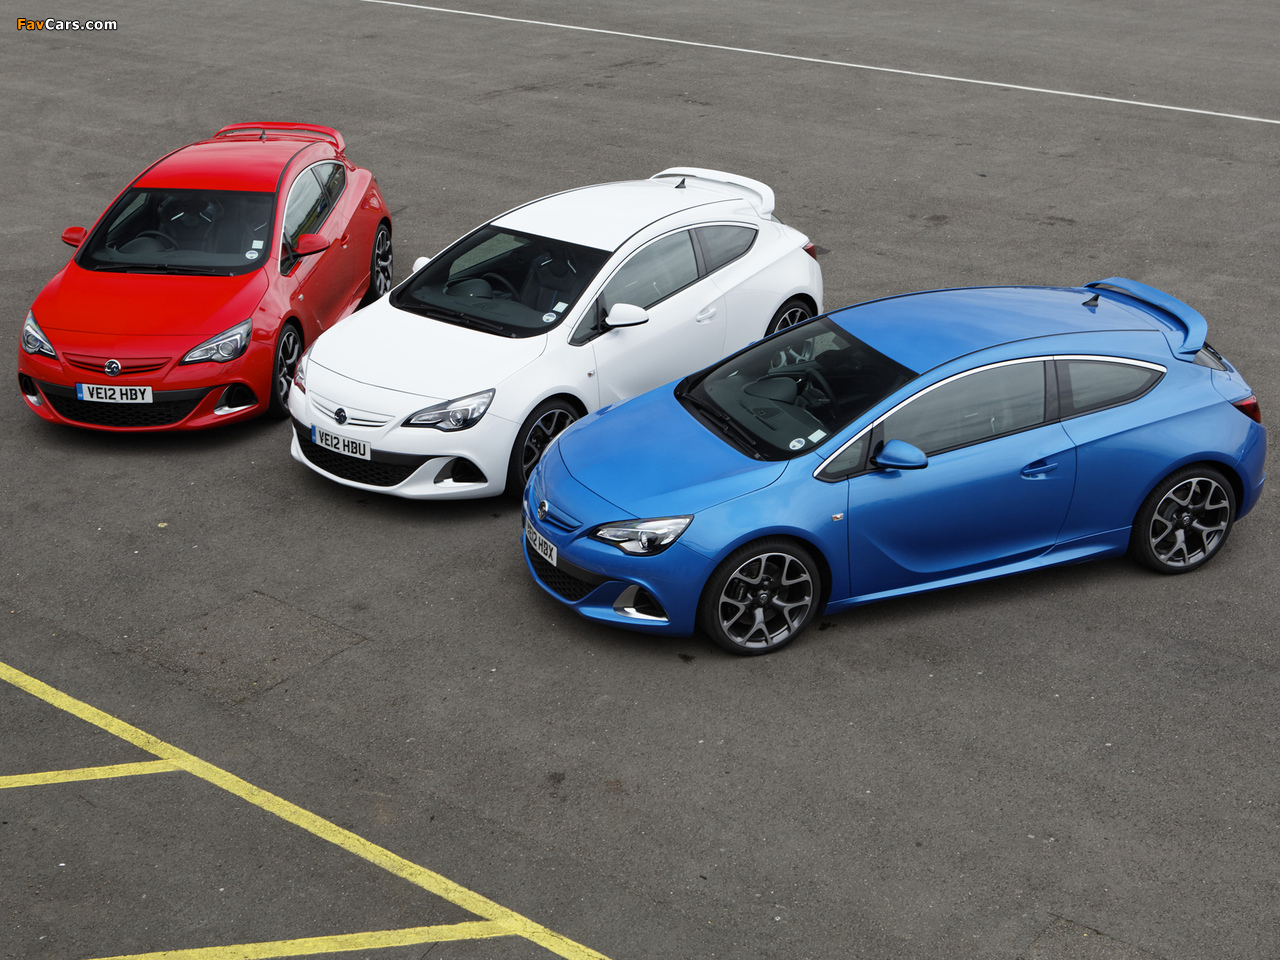 Vauxhall Astra VXR 2012 images (1280 x 960)